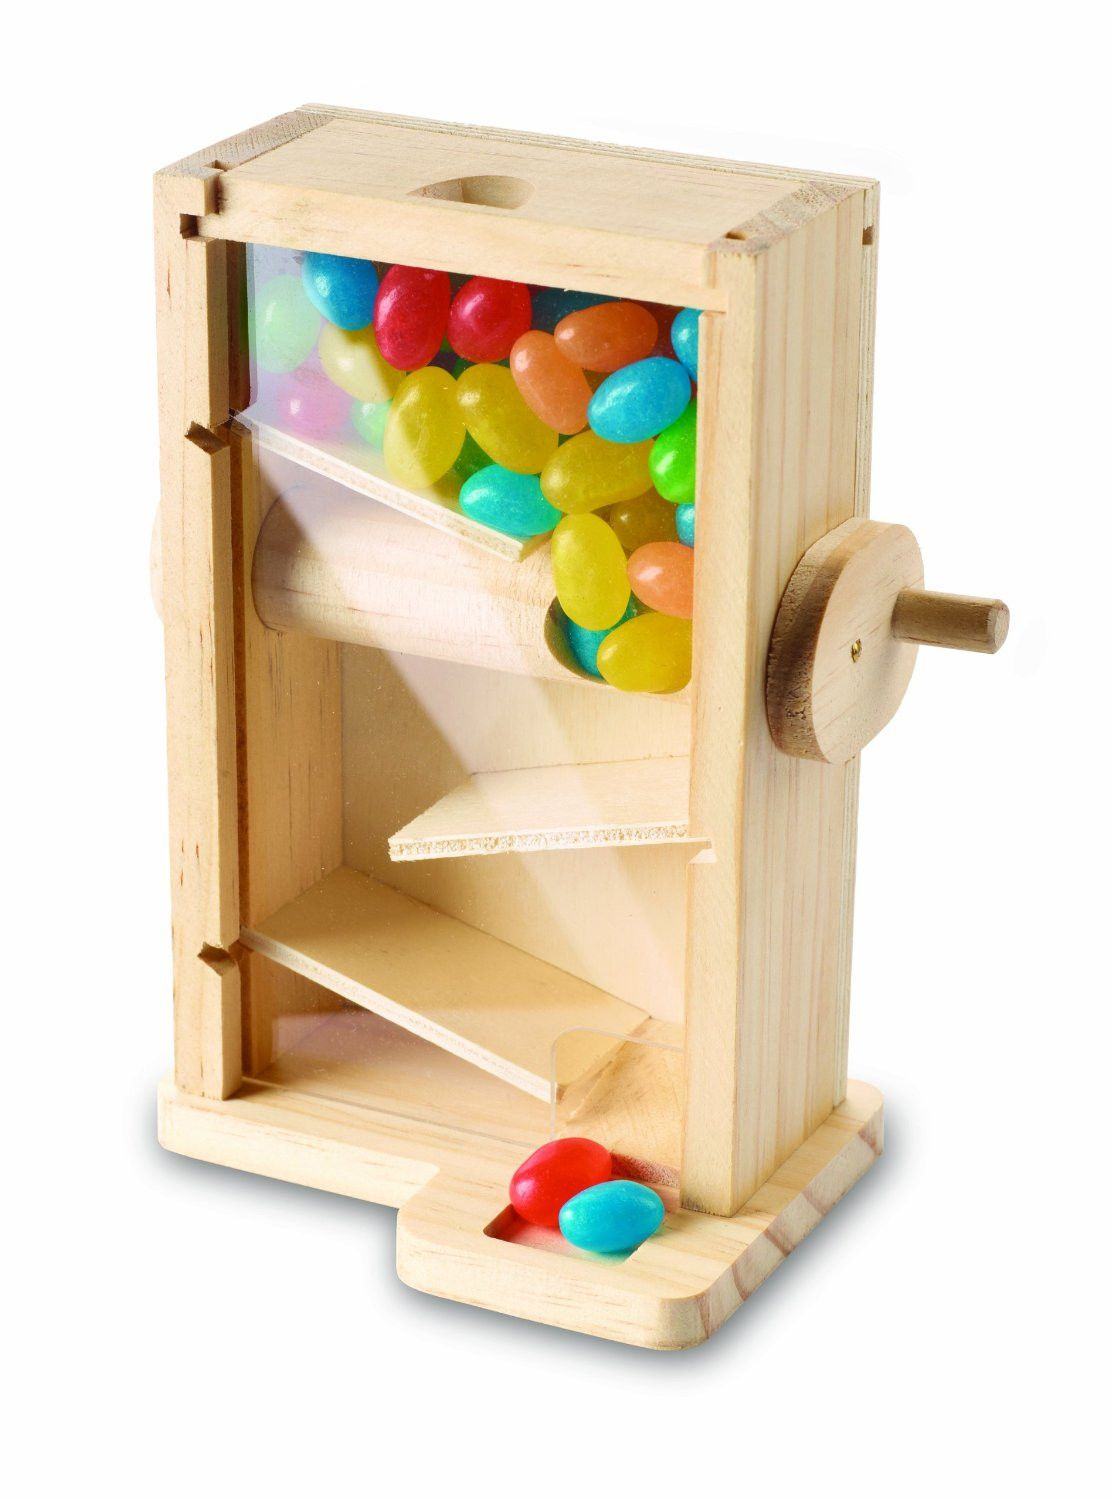 candy maze diy woodcraft kit | inexpensive woodworking tips